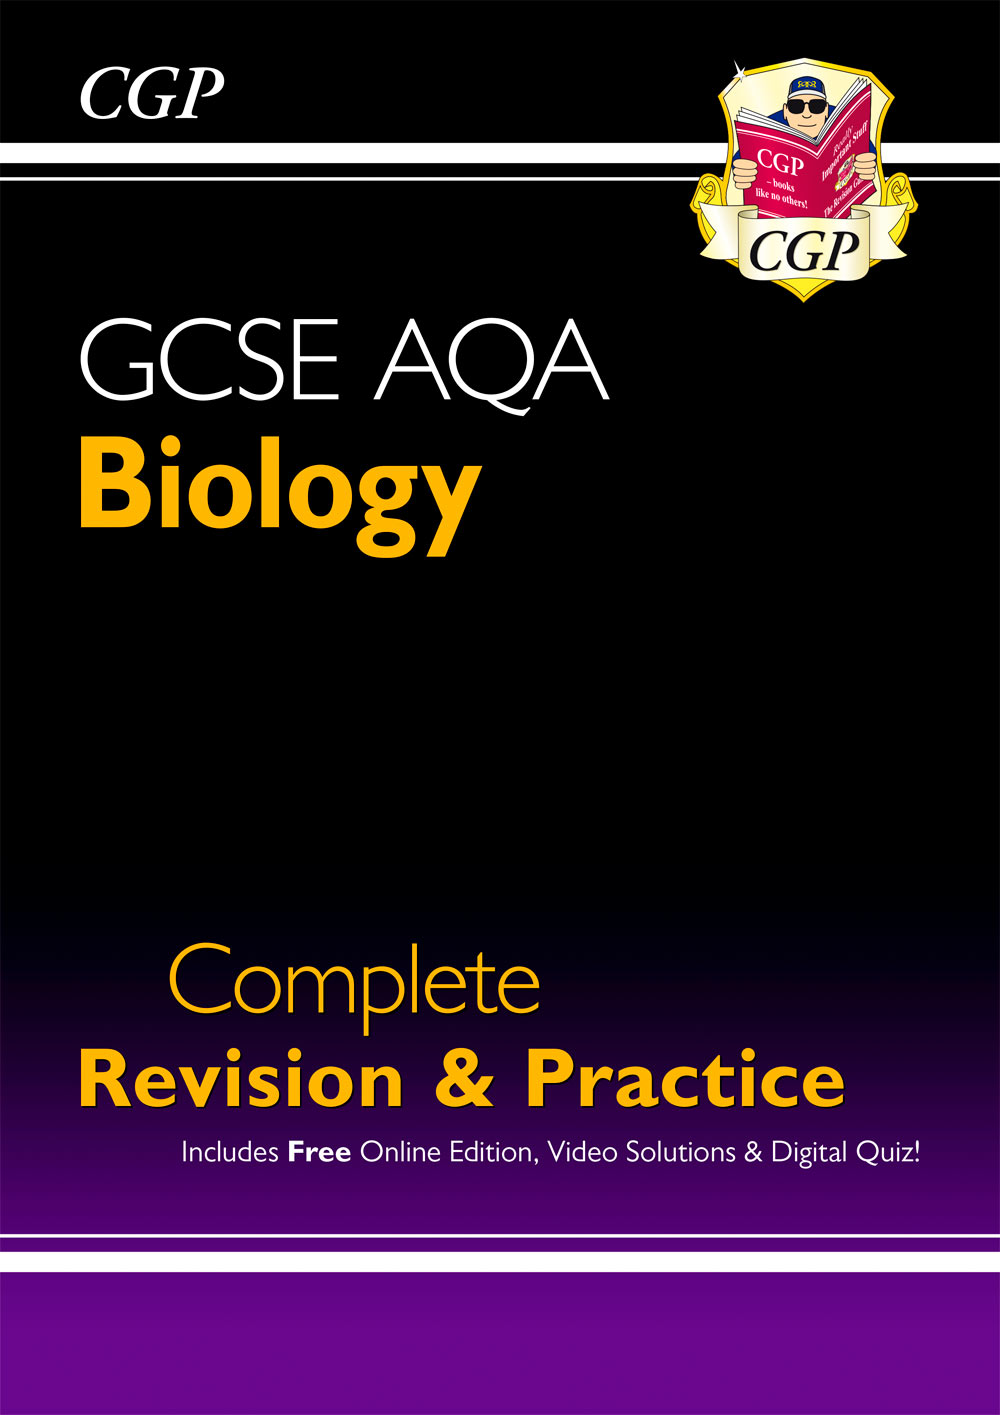 BAS46 - New GCSE Biology AQA Complete Revision & Practice includes Online Ed, Videos & Quizzes